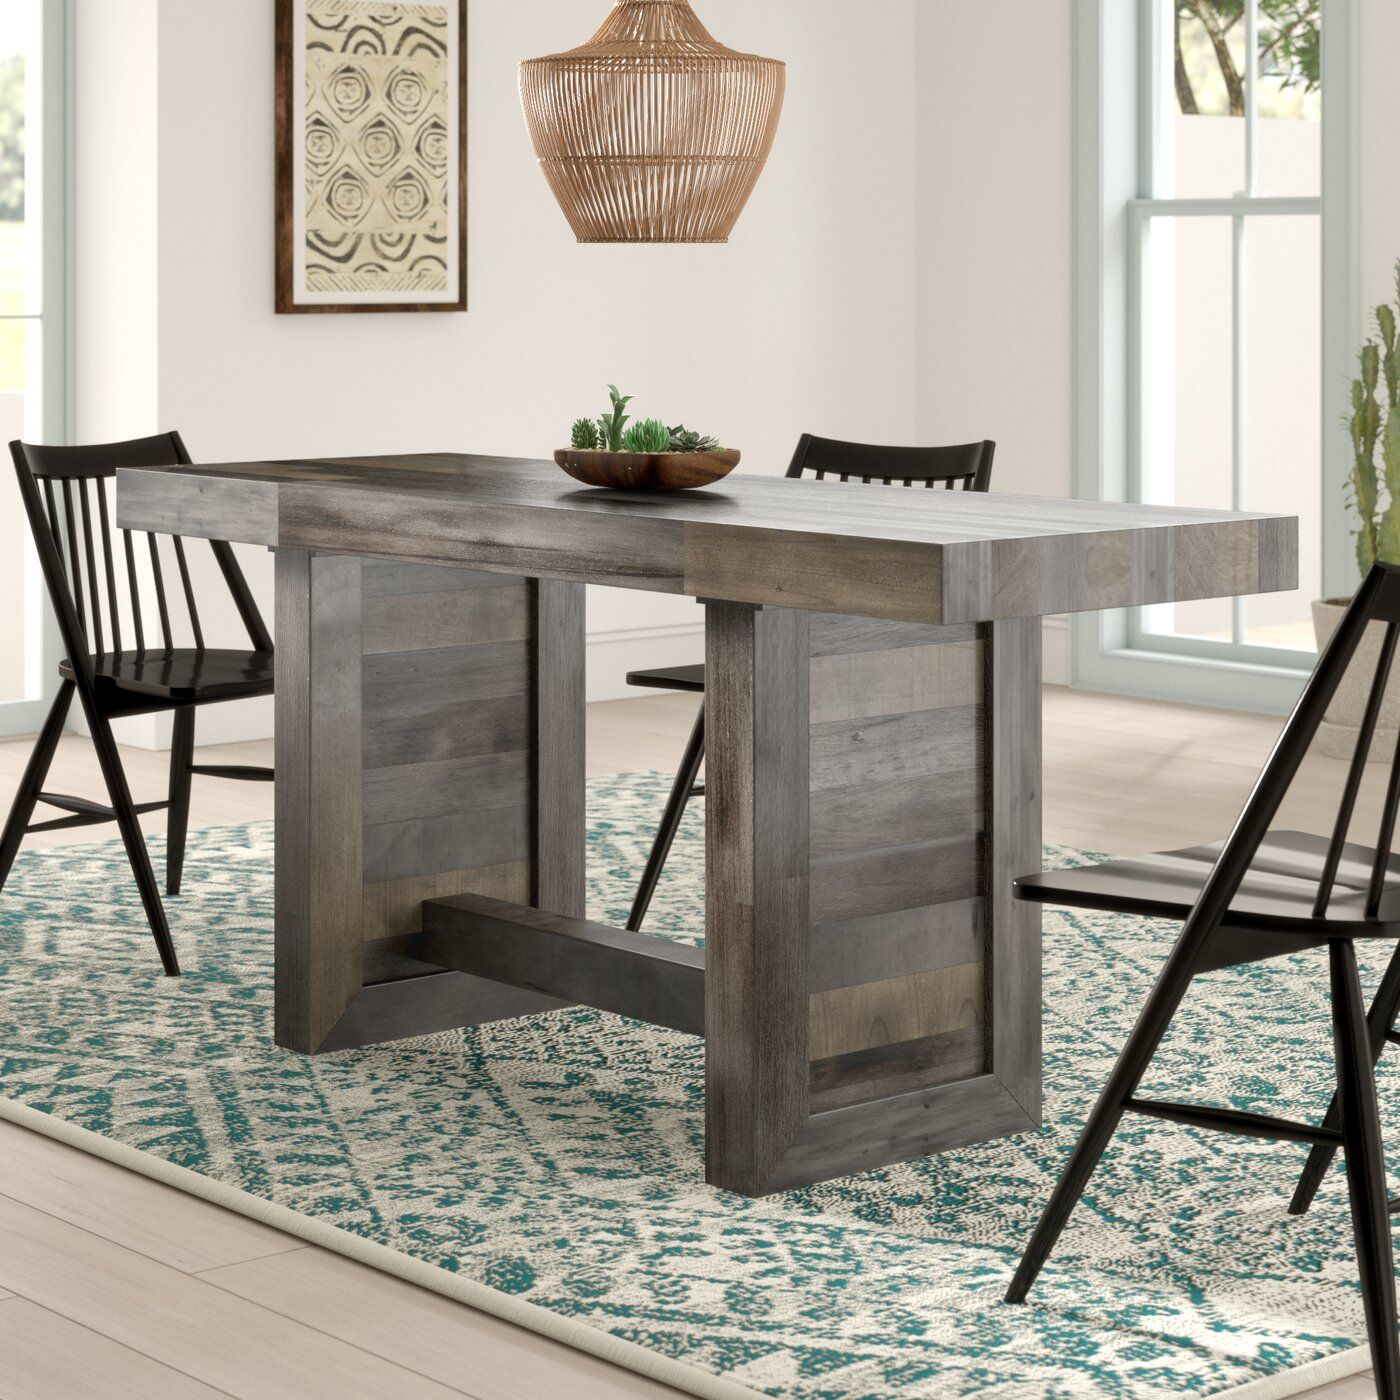 Mistana Massey Solid Wood Dining Chair Reviews Wayfair Dining Table Solid Wood Dining Chairs Counter Height Dinner Table